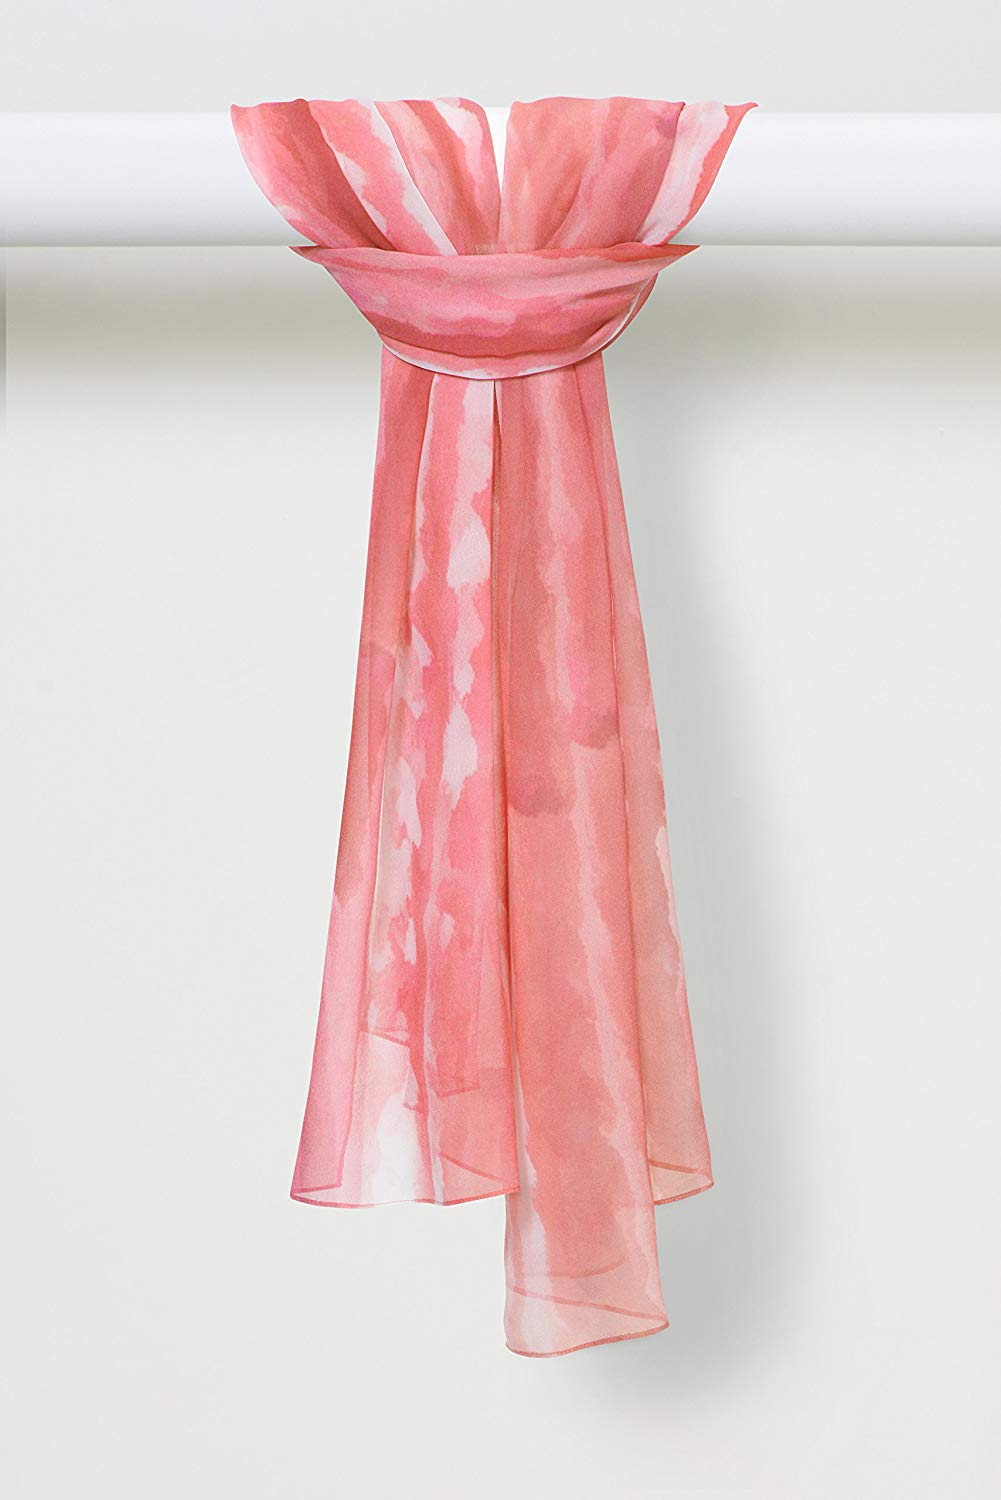 Two-Color Light Sprays Pure Silk Chiffon Scarf in Pink